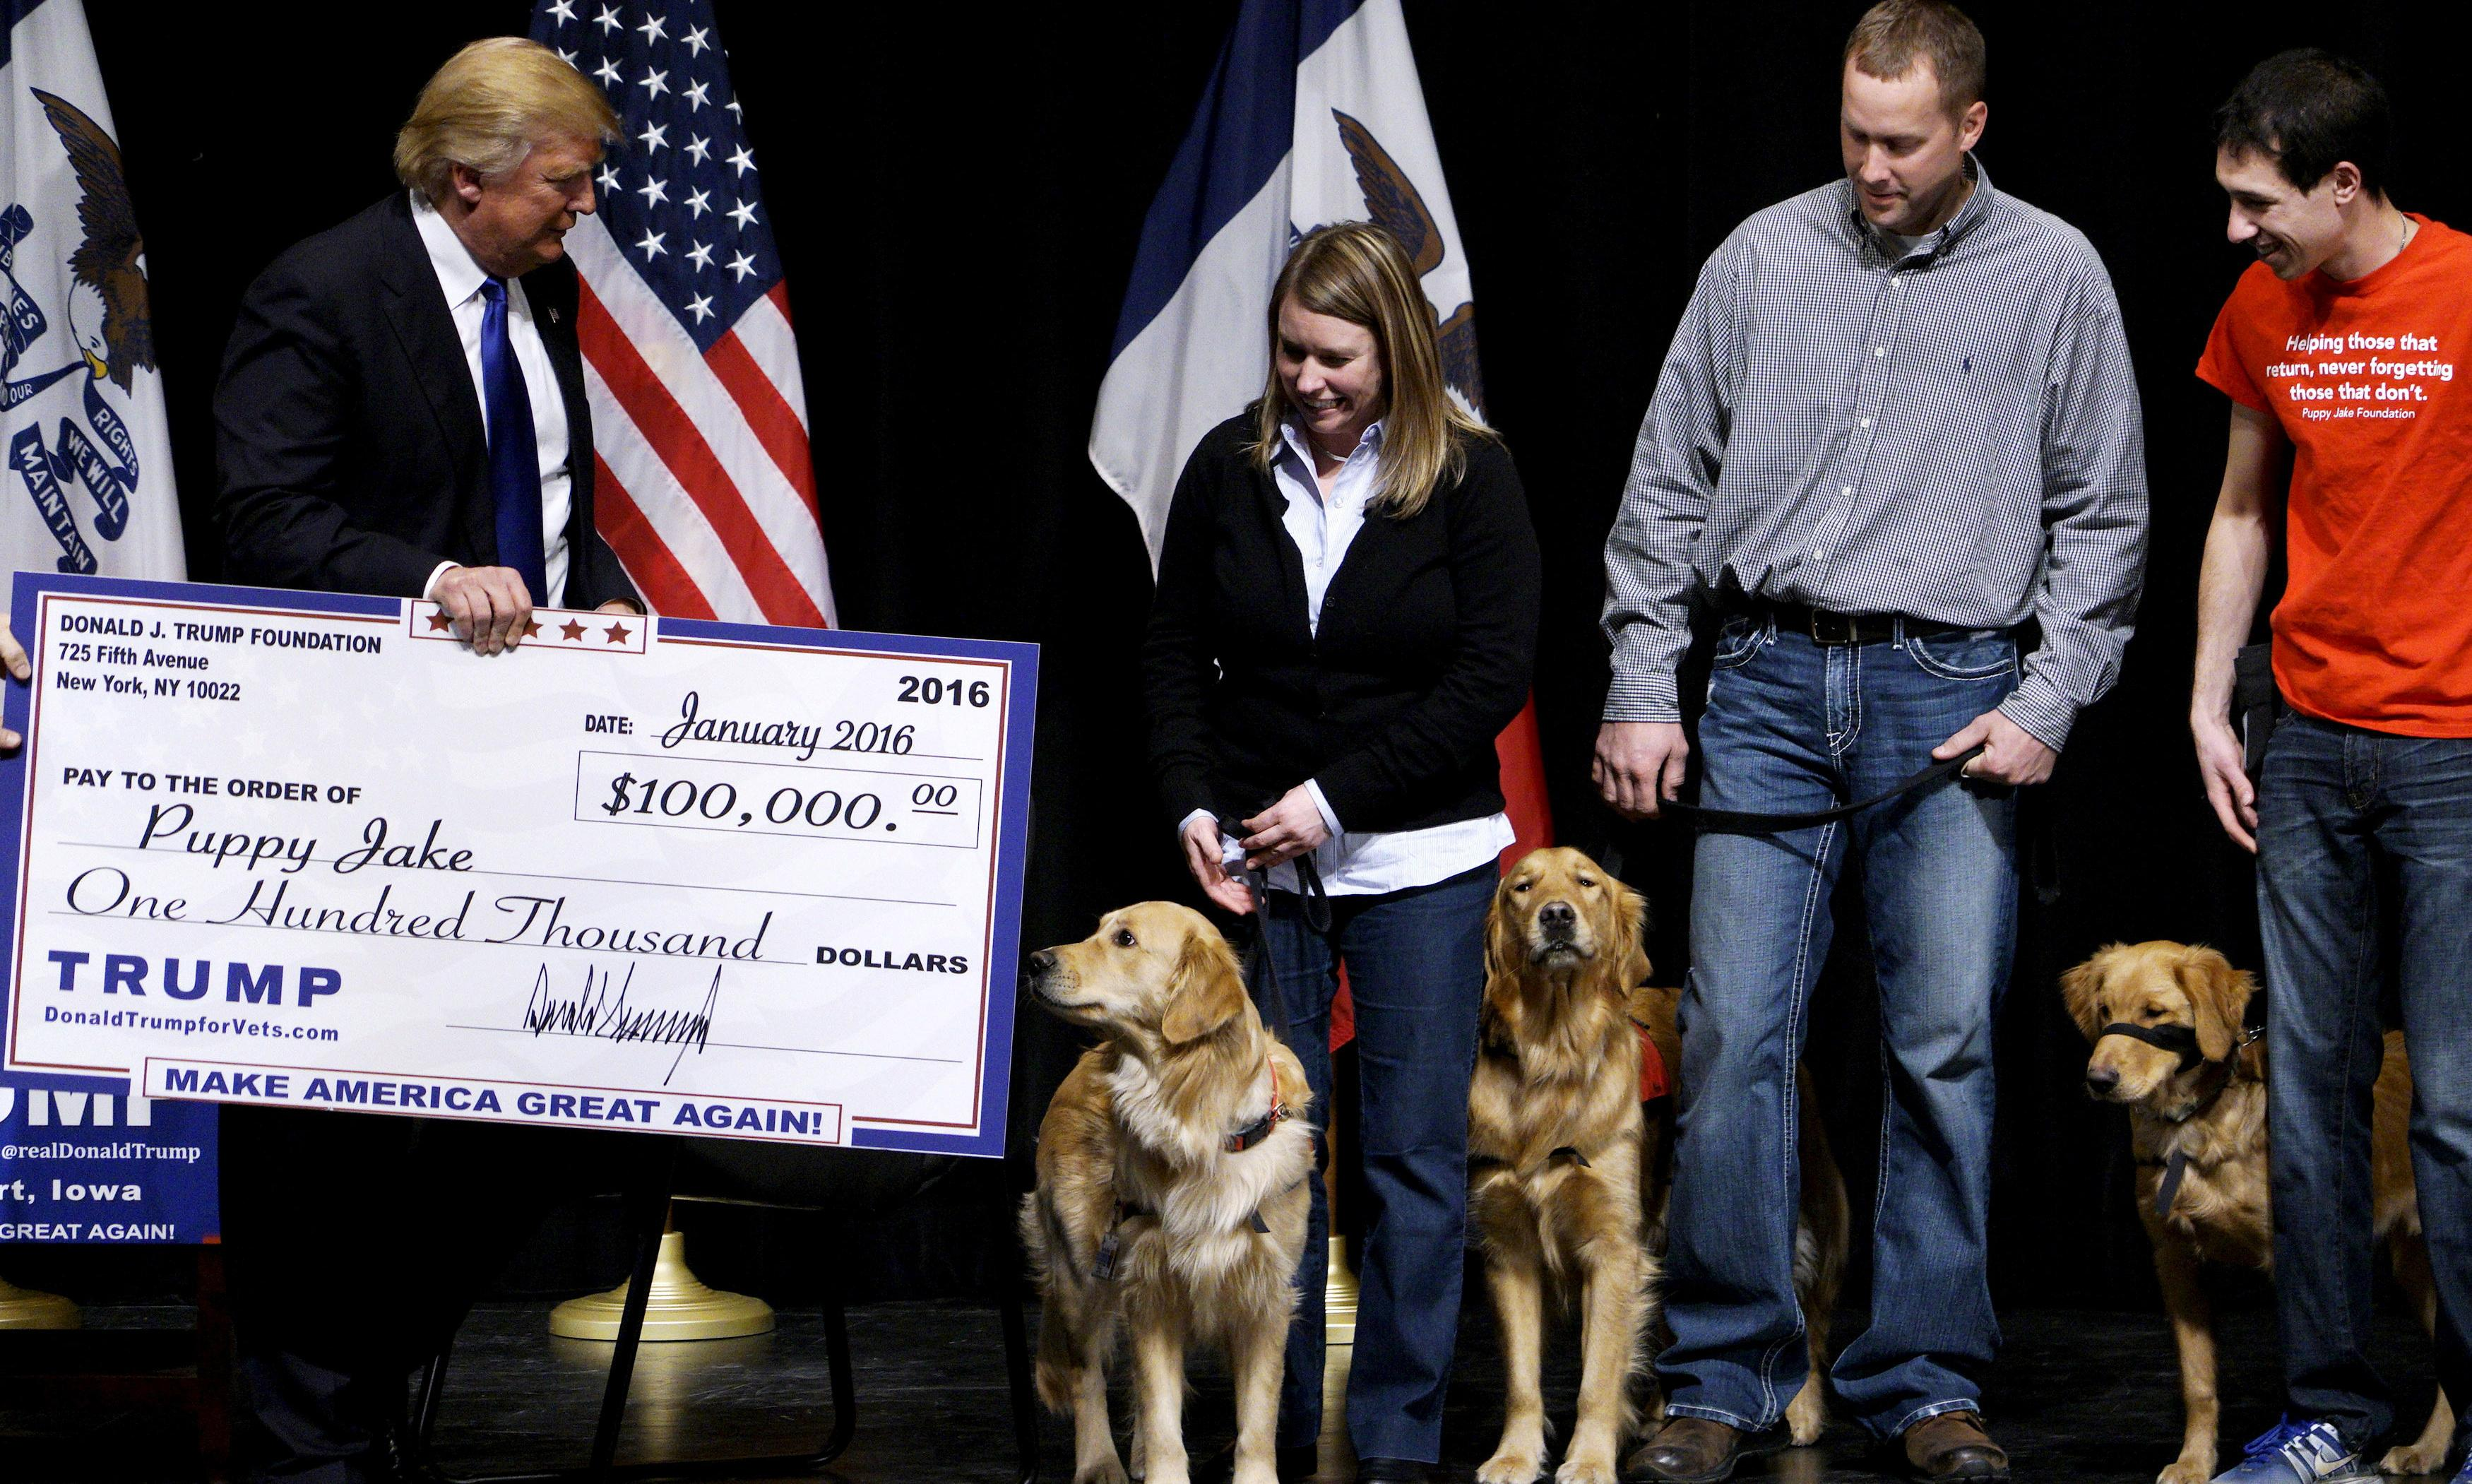 Trump Foundation to shut down after lawsuit exposes 'pattern of illegality'